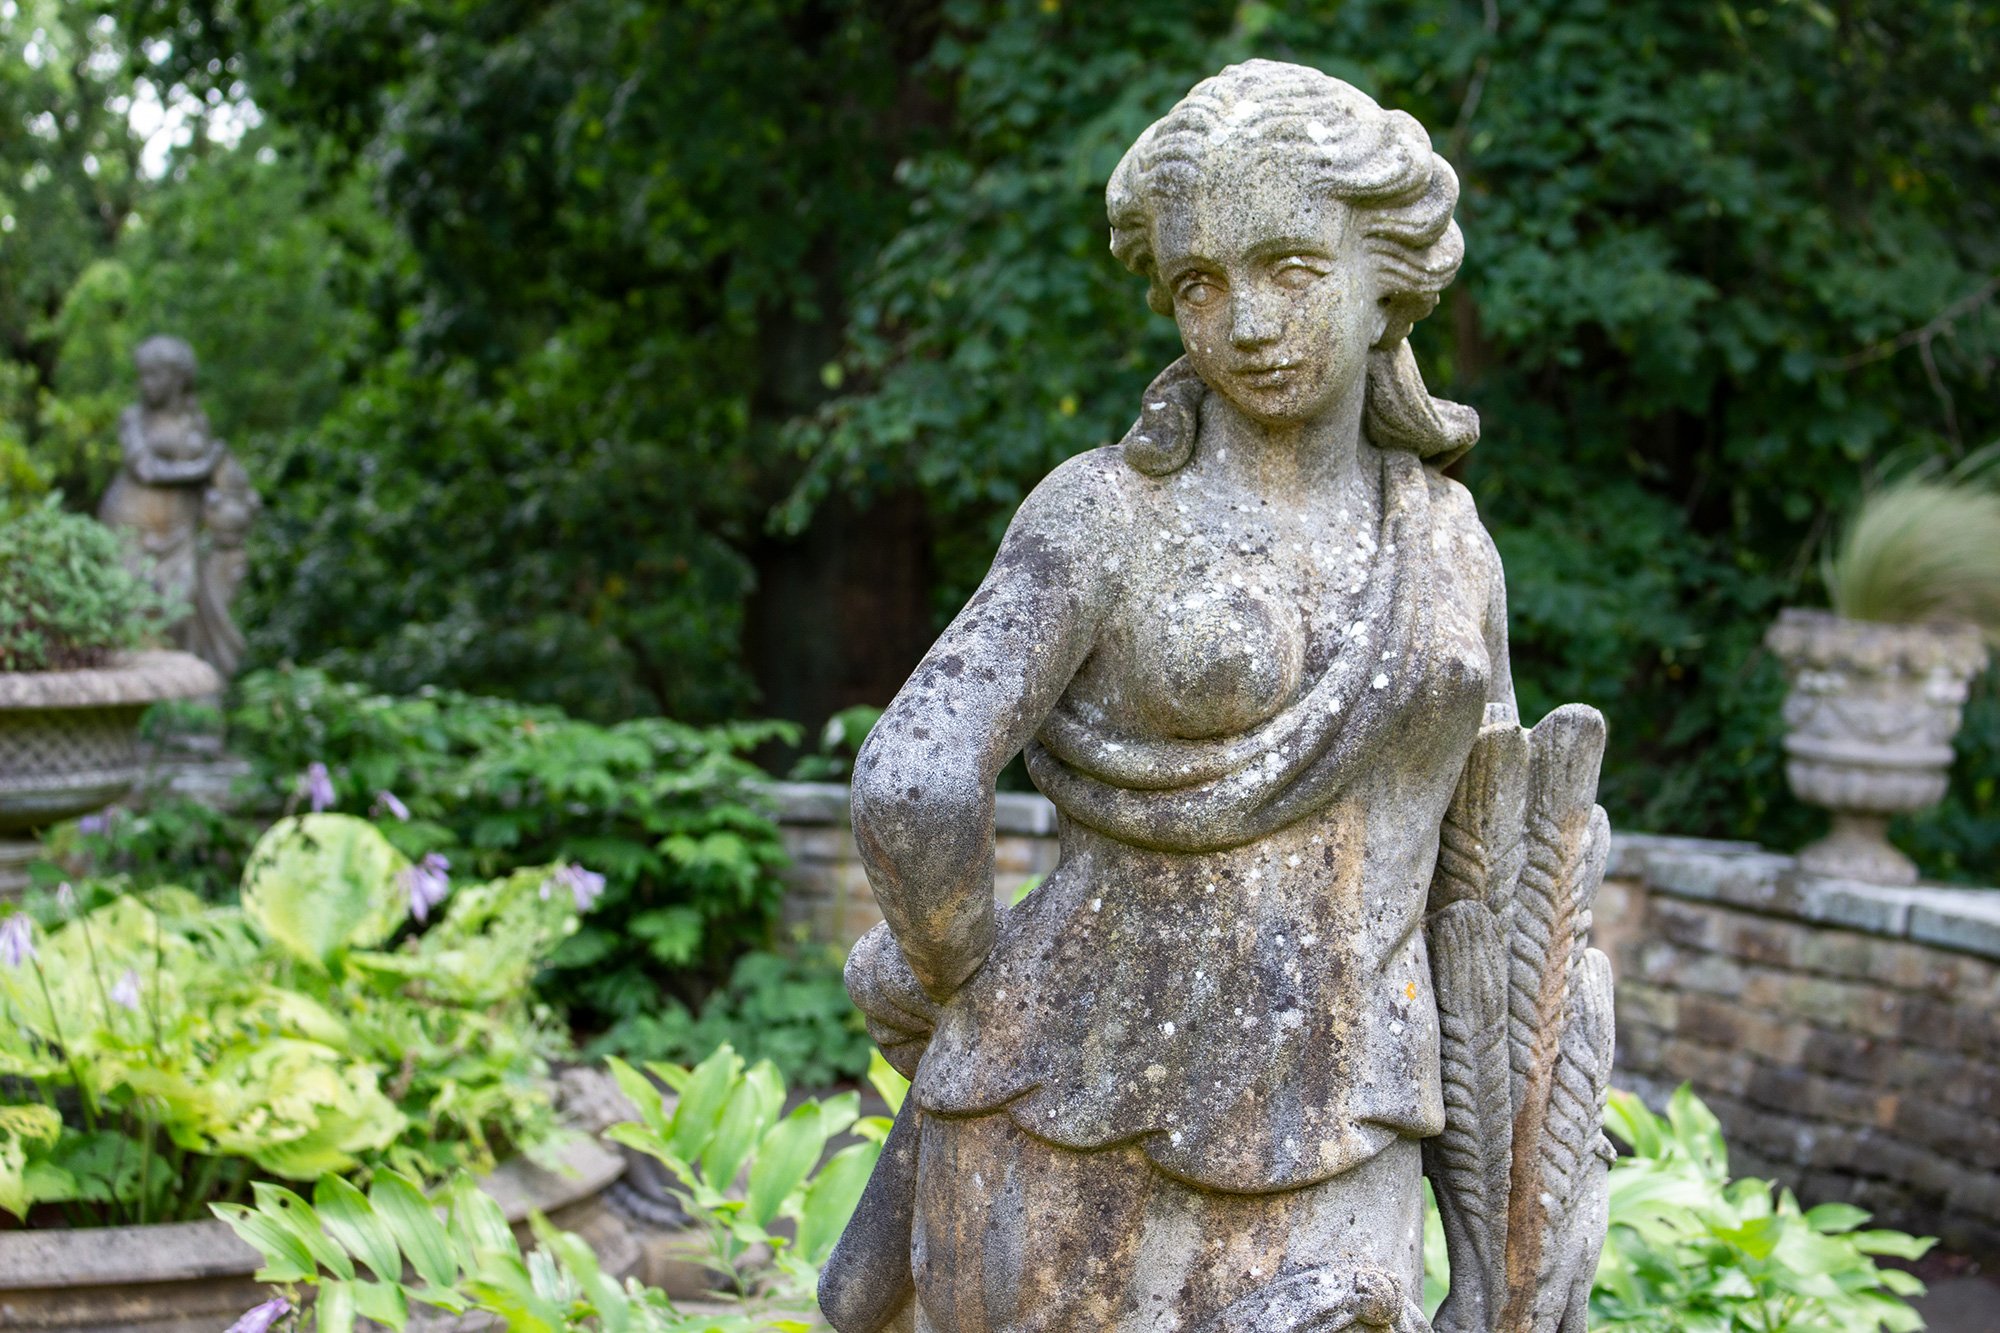 Garden Statues Exclusively by the David Sharp Studio